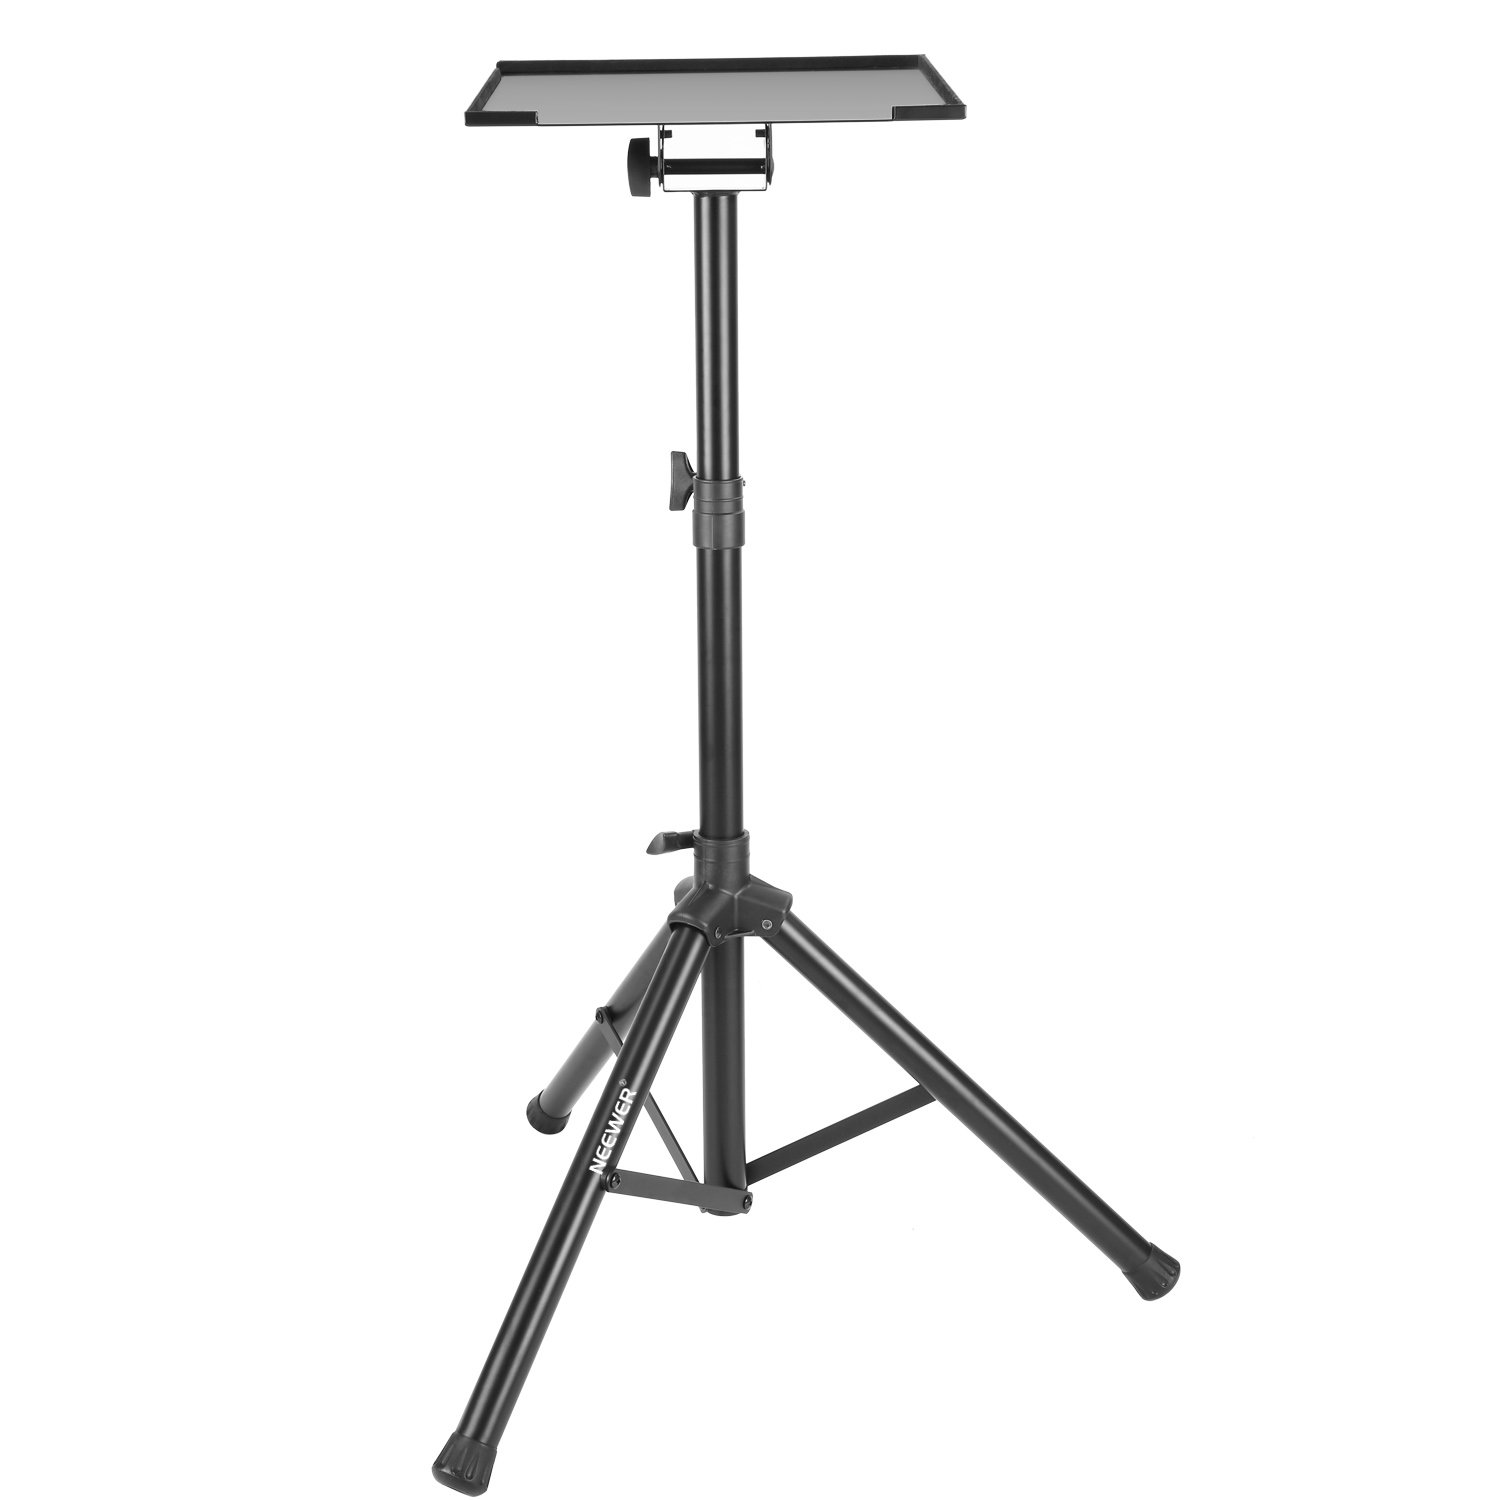 Neewer Deluxe 37.4''-58.7''/95cm-149cm Adjustable and Collapsible Heavy-Duty Laptop Stand with Solid Tripod Base and Non-slip Rubber Caps, Black